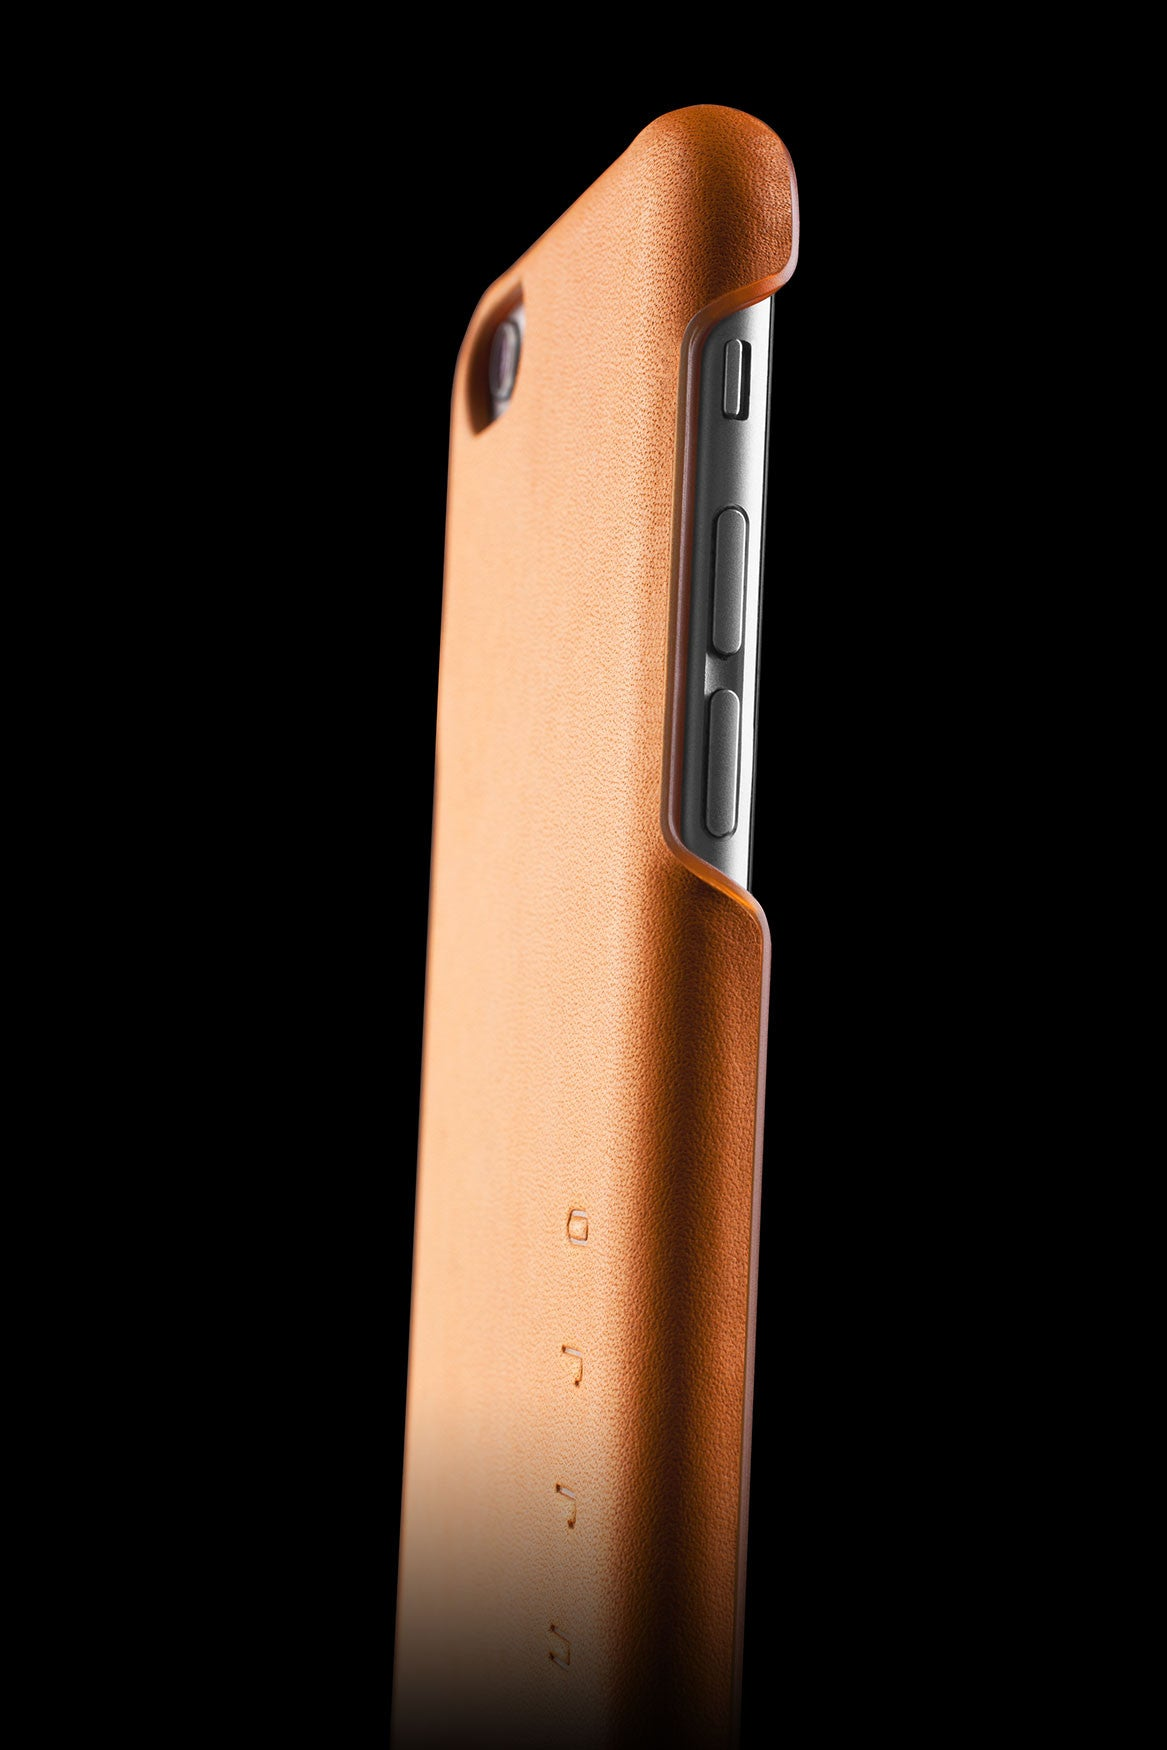 on sale 2a39a b0ca7 Mujjo Leather Case iPhone 6s and 6s Plus - Brown